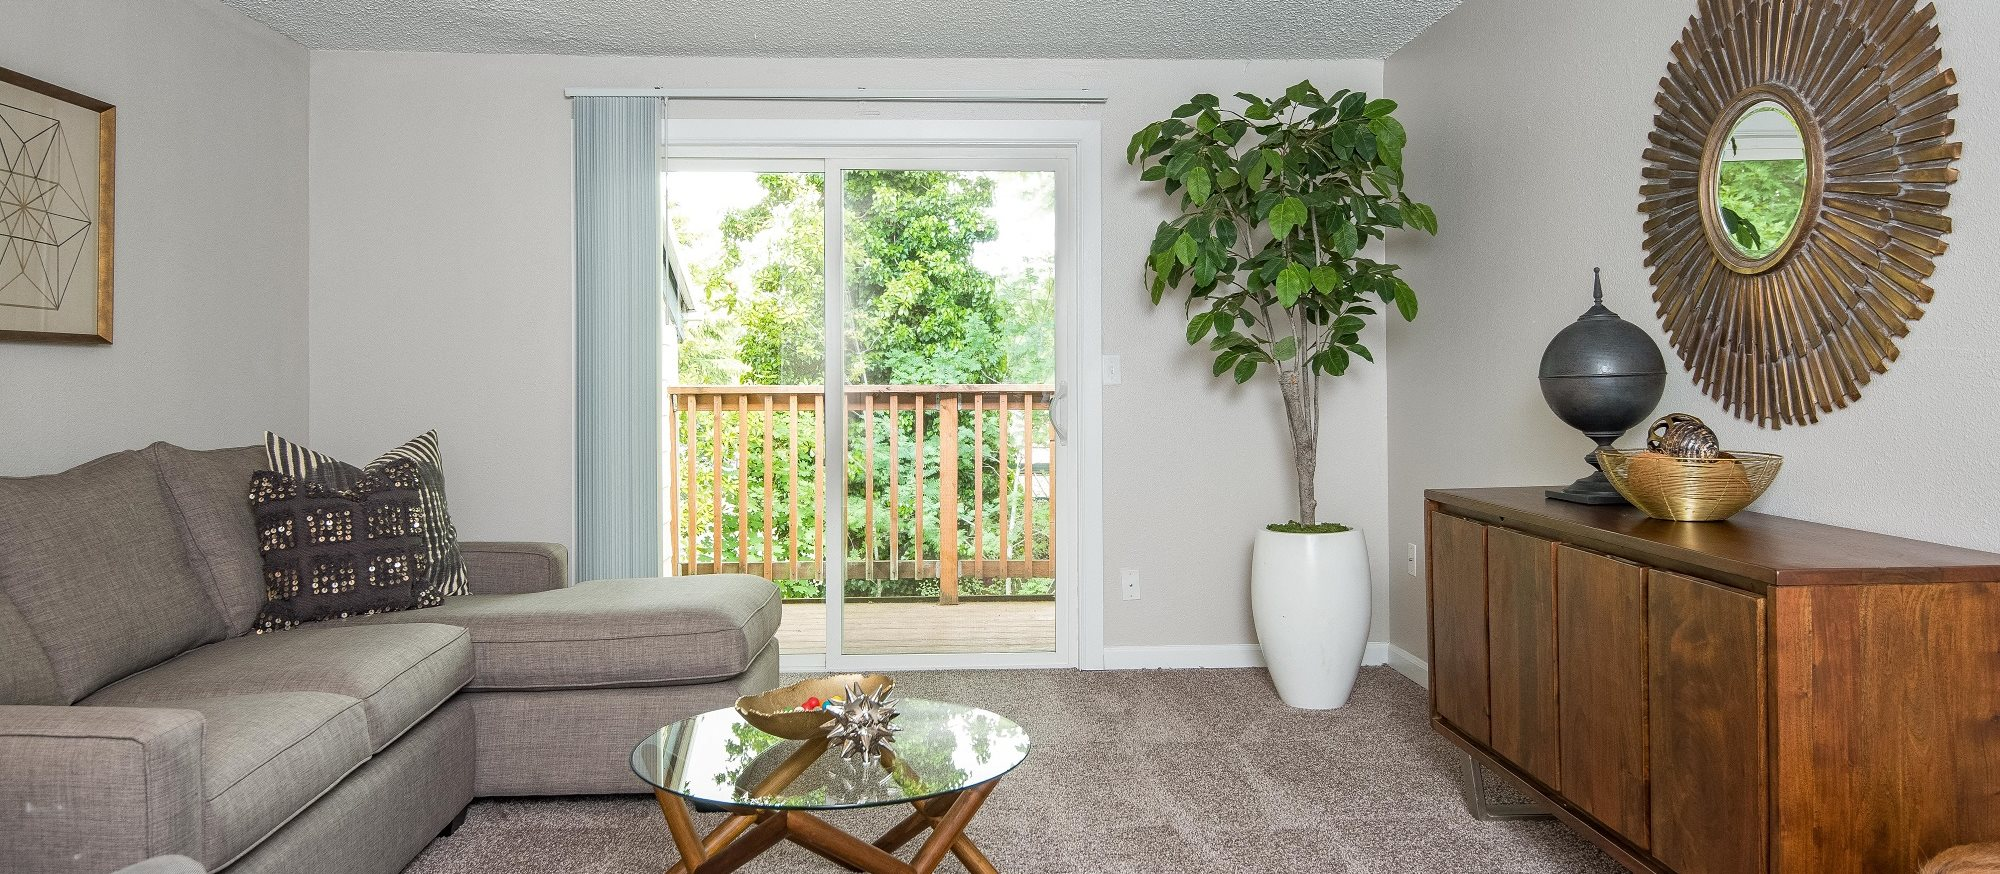 West End Apartments | Beaverton, OR